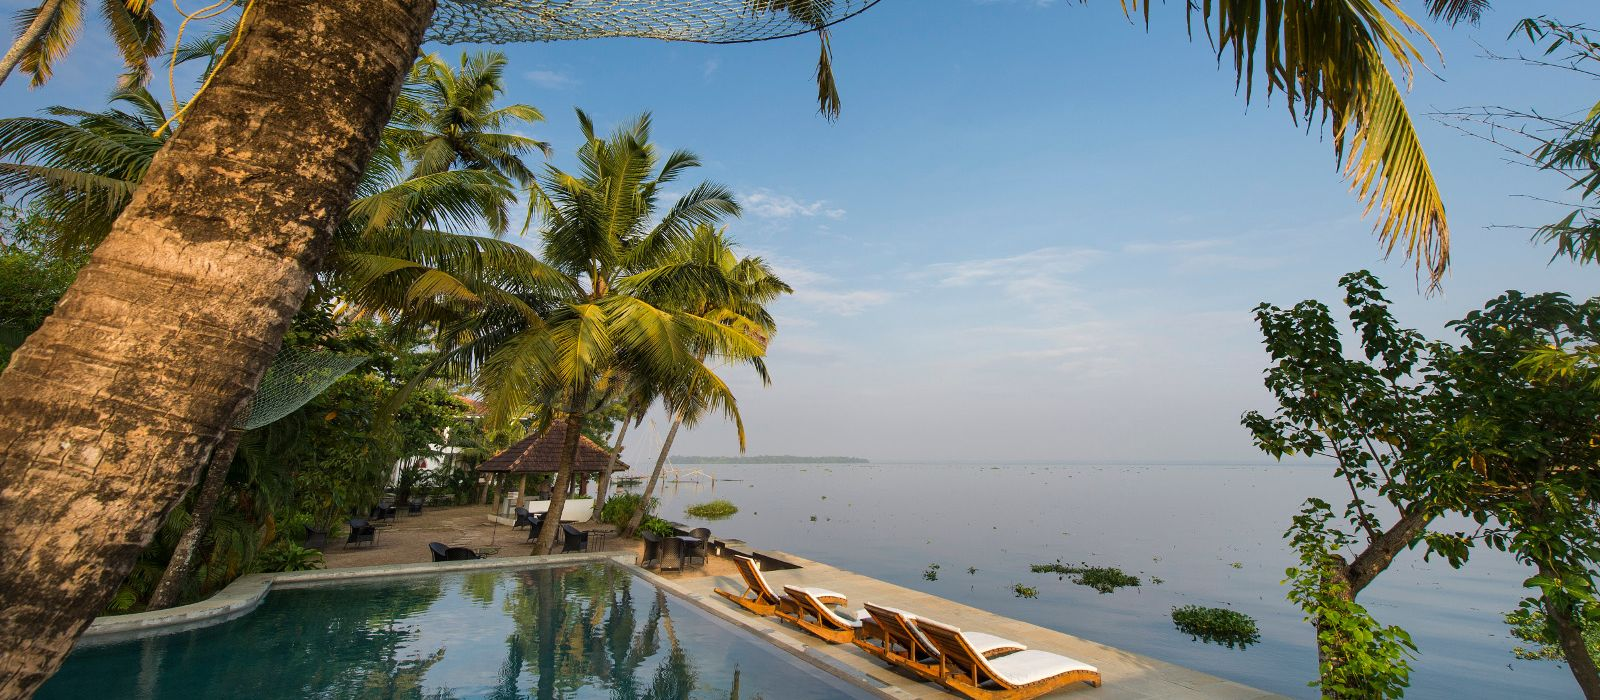 Hotel Malabar Escapes Purity Resort, Muhamma South India